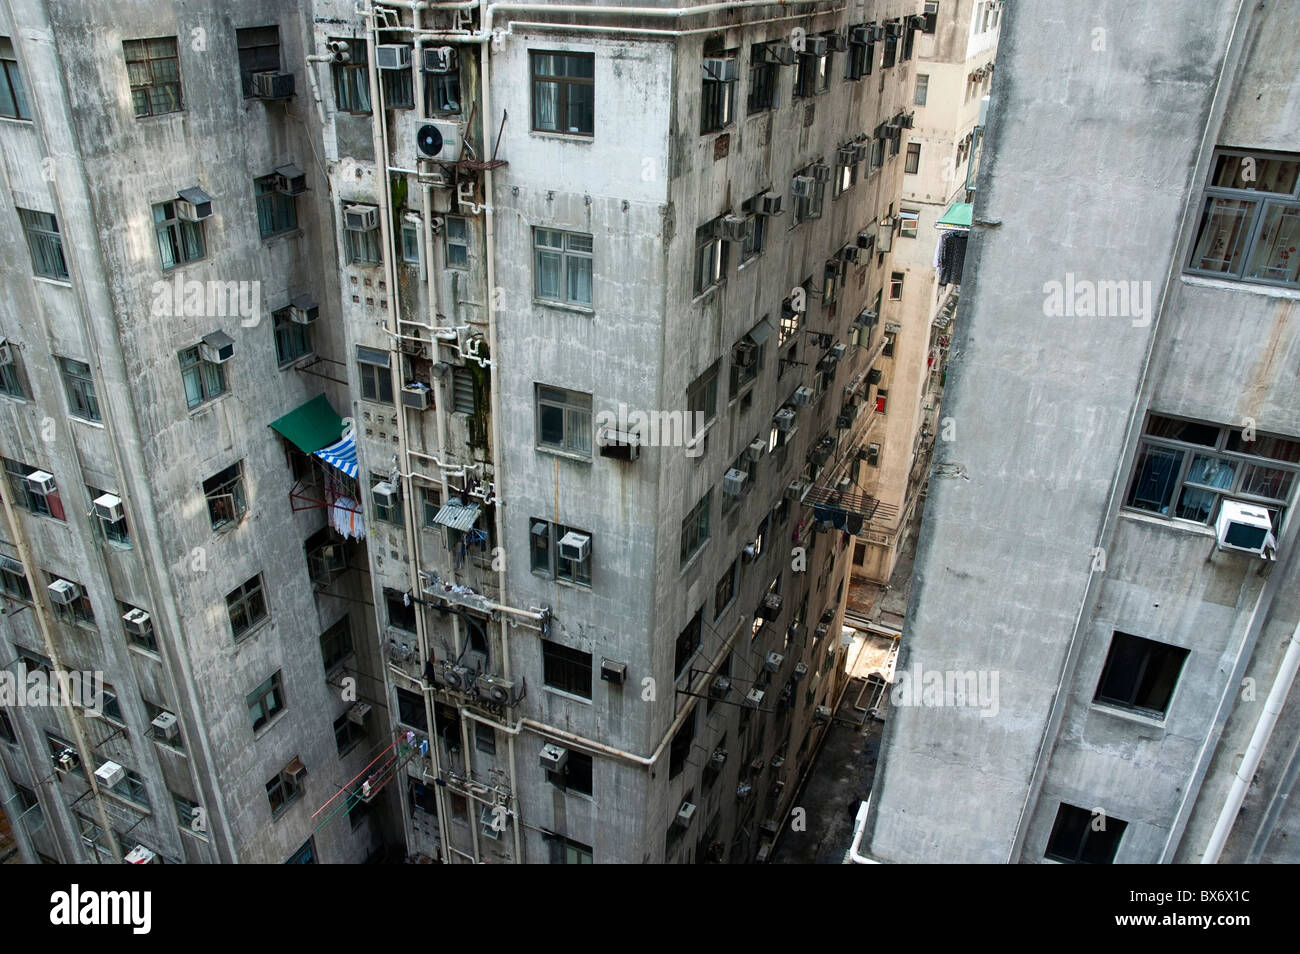 Old Run Down Concrete High Rise Apartment Buildings In